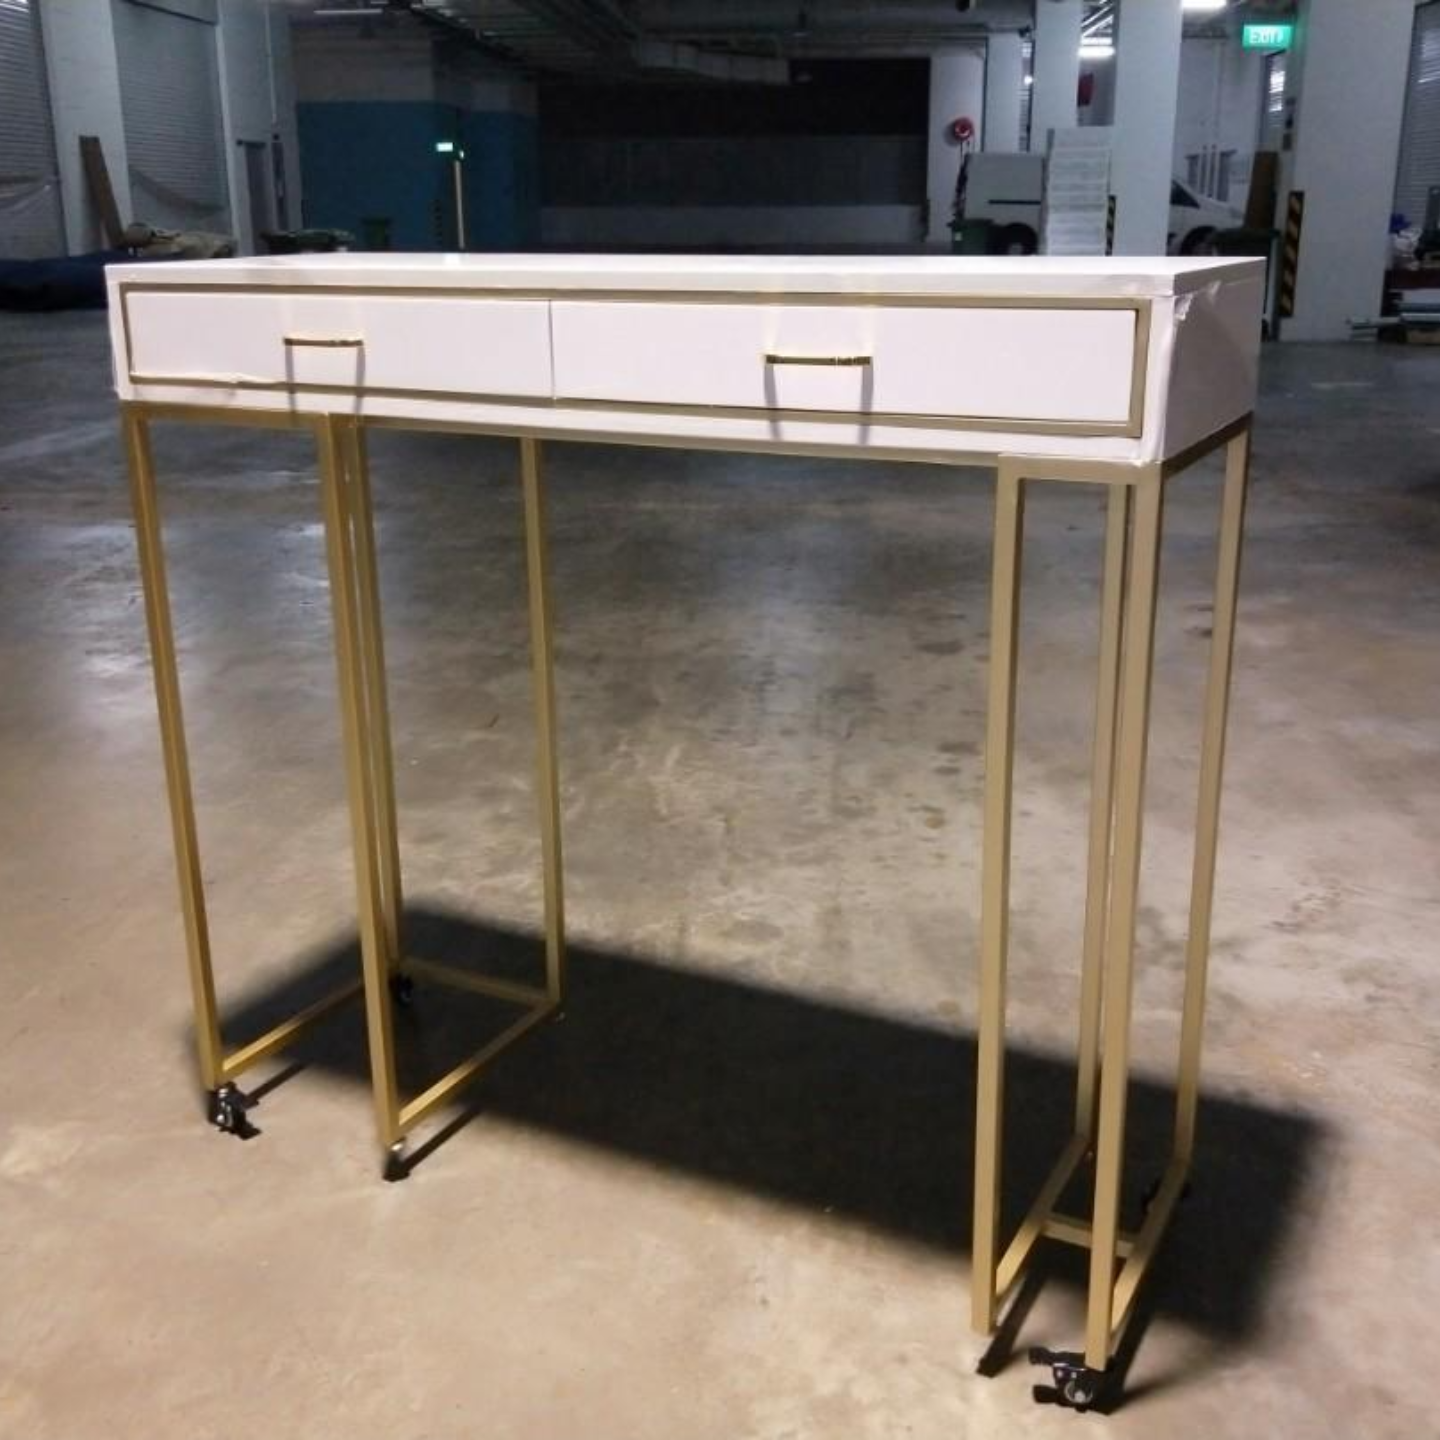 CRYSTIK Modern Hallway Console with Gold Frame on Wheels